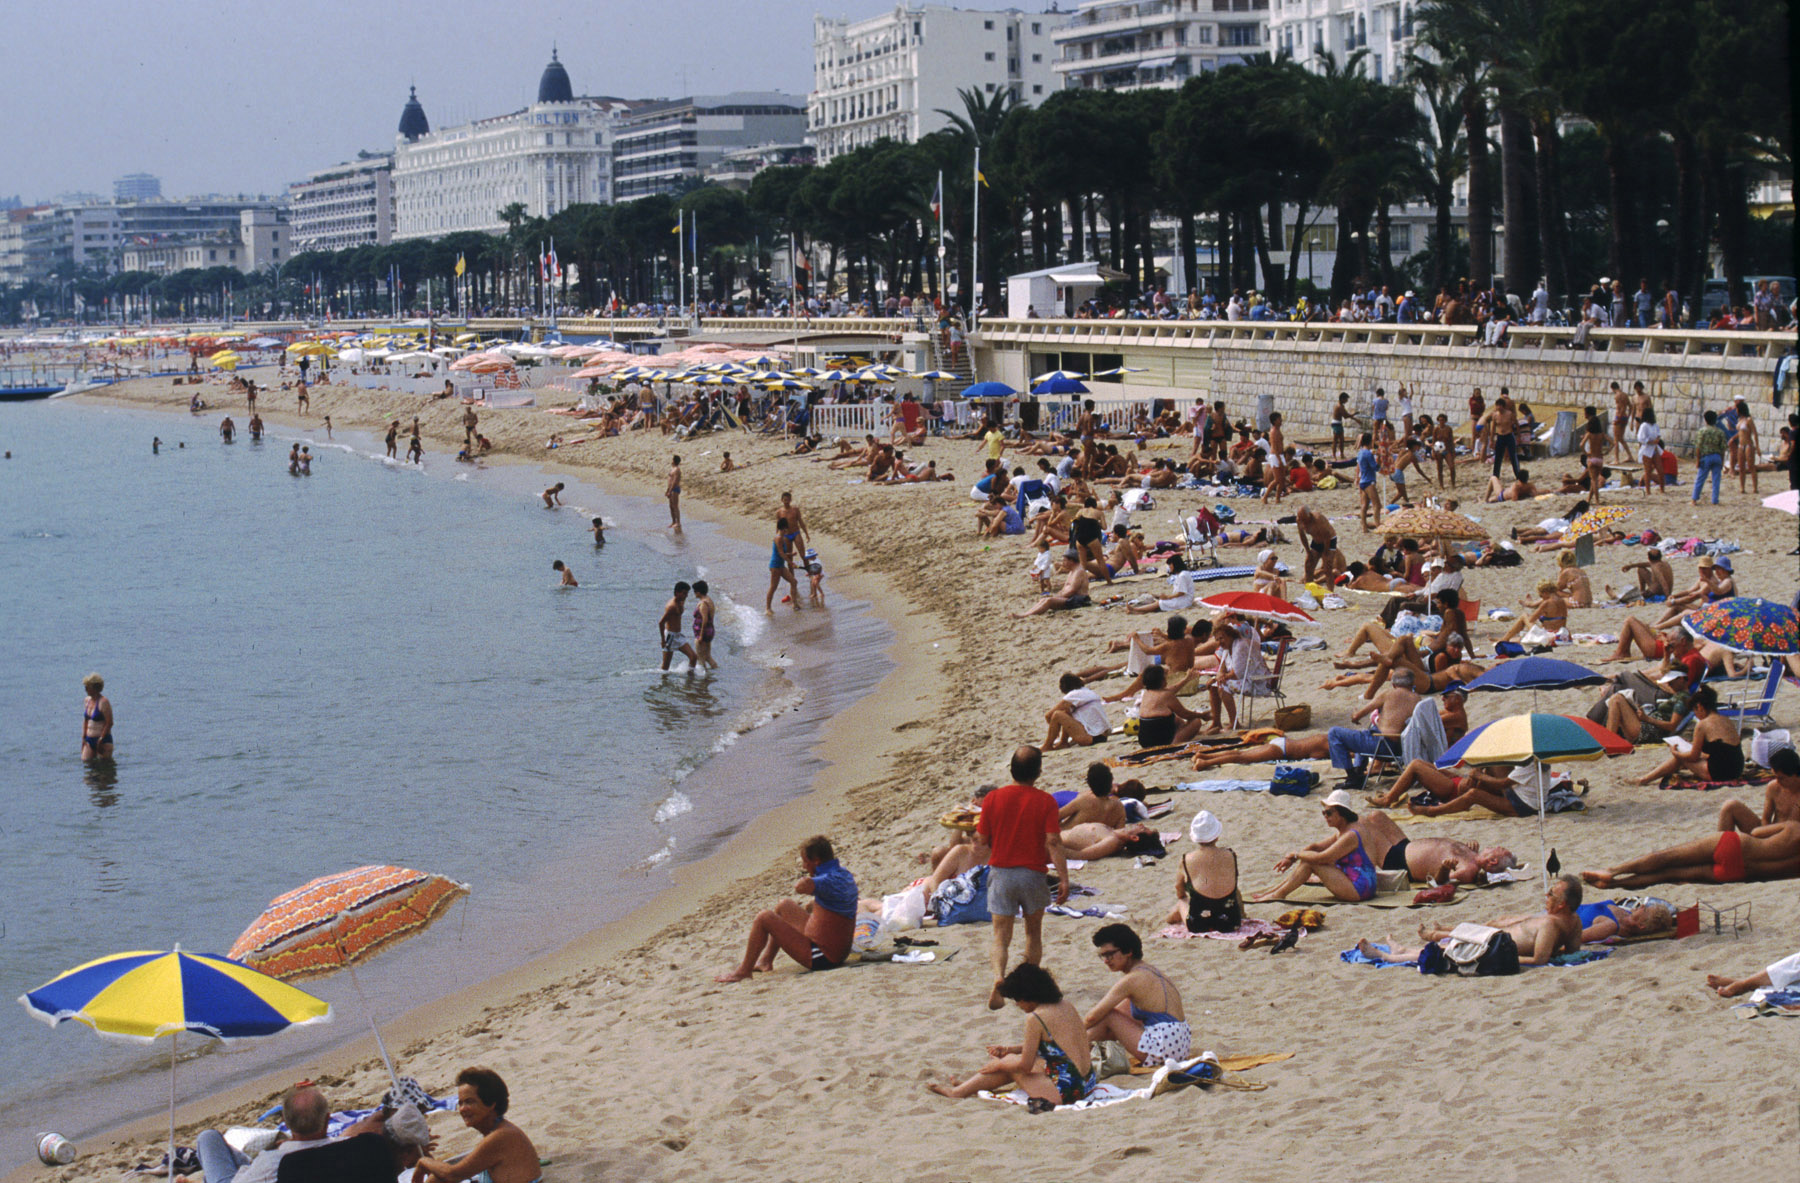 Sunny day at Cannes beach, French Riviera